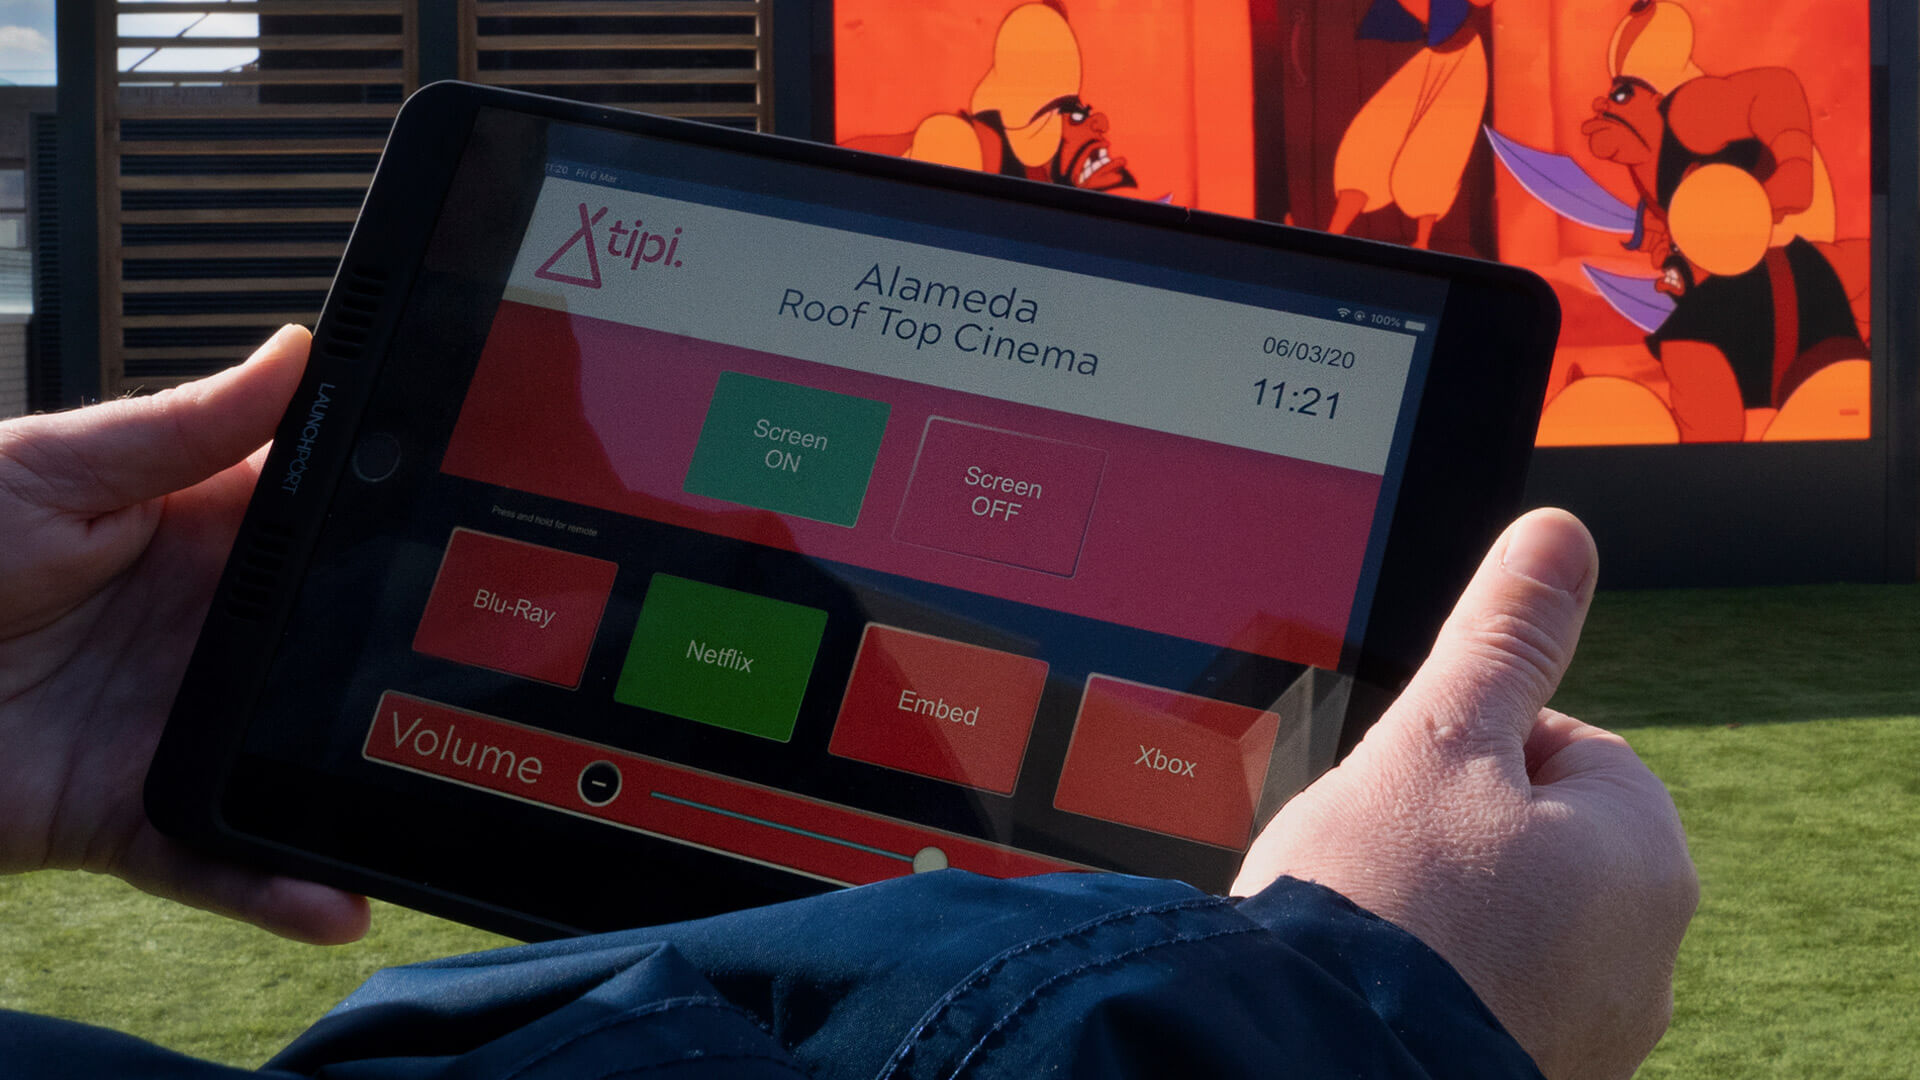 Eclipse Digital Media - Digital Signage and AV Solutions - AV Technology Awards 2020 Winners - Rooftop Cinema Alameda iPad Controller